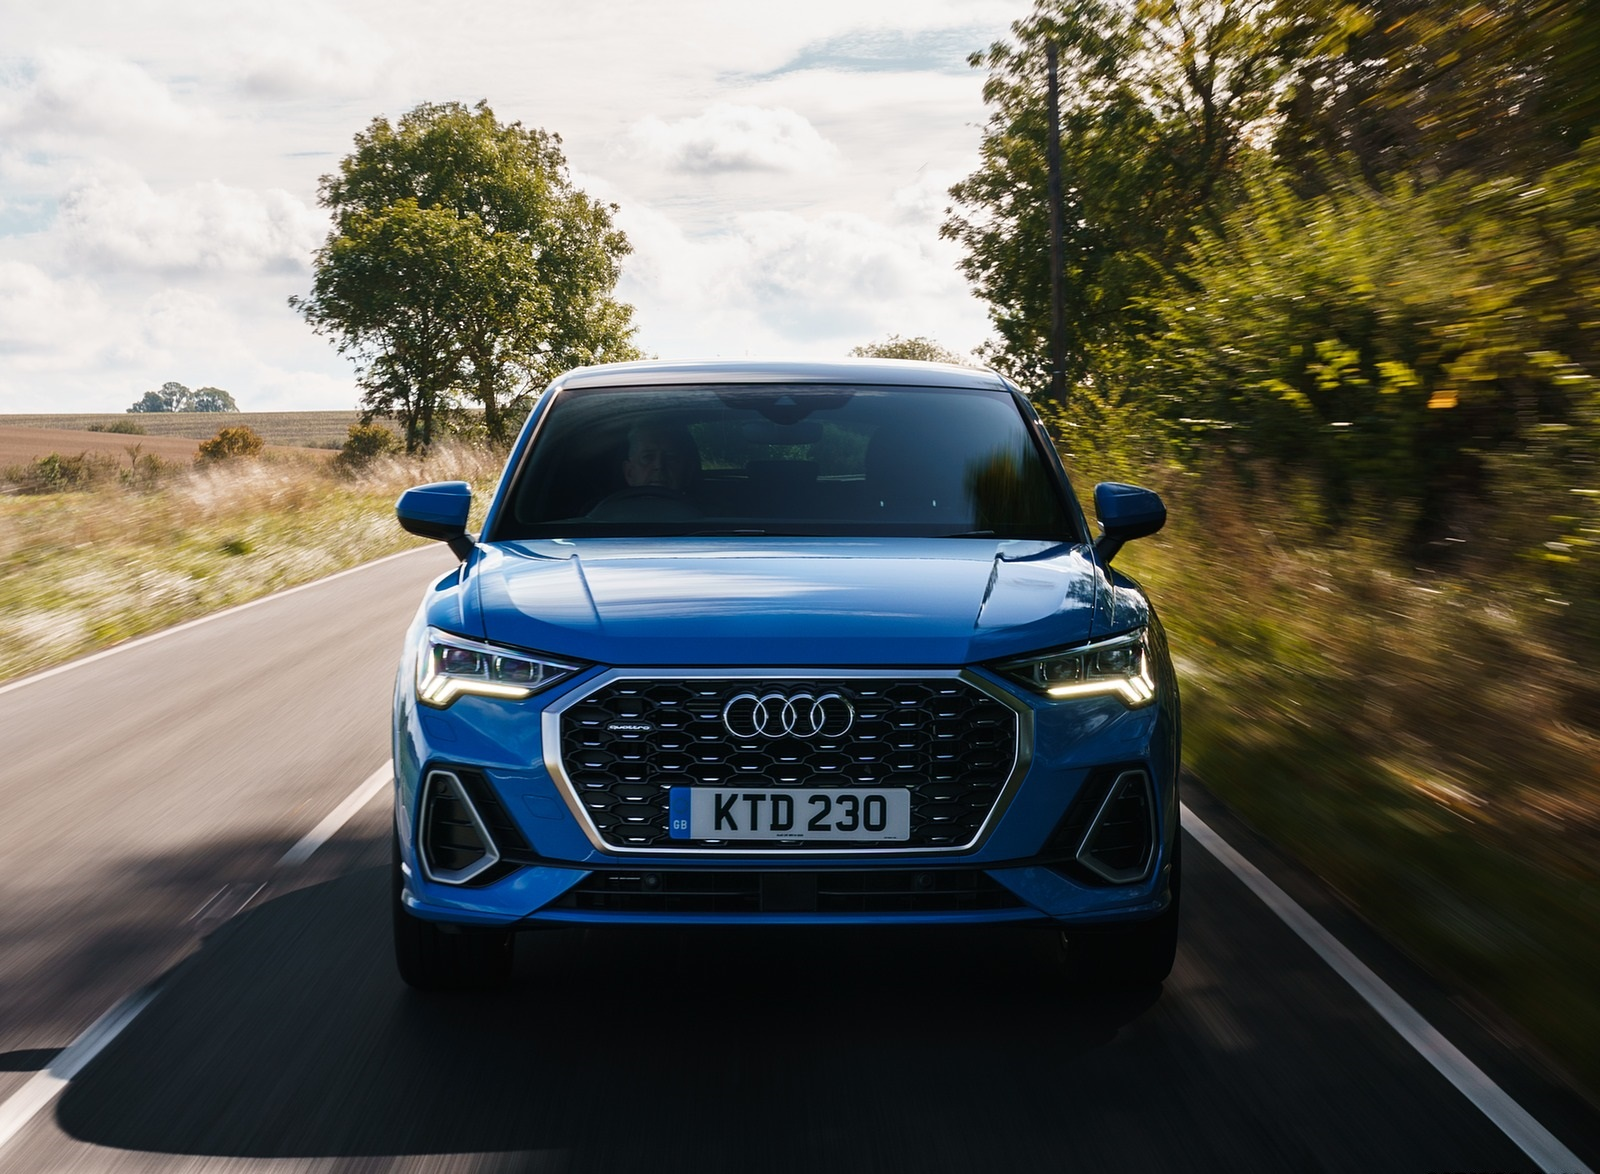 2020 Audi Q3 Sportback 45 TFSI quattro (UK-Spec) Front Wallpapers (9)